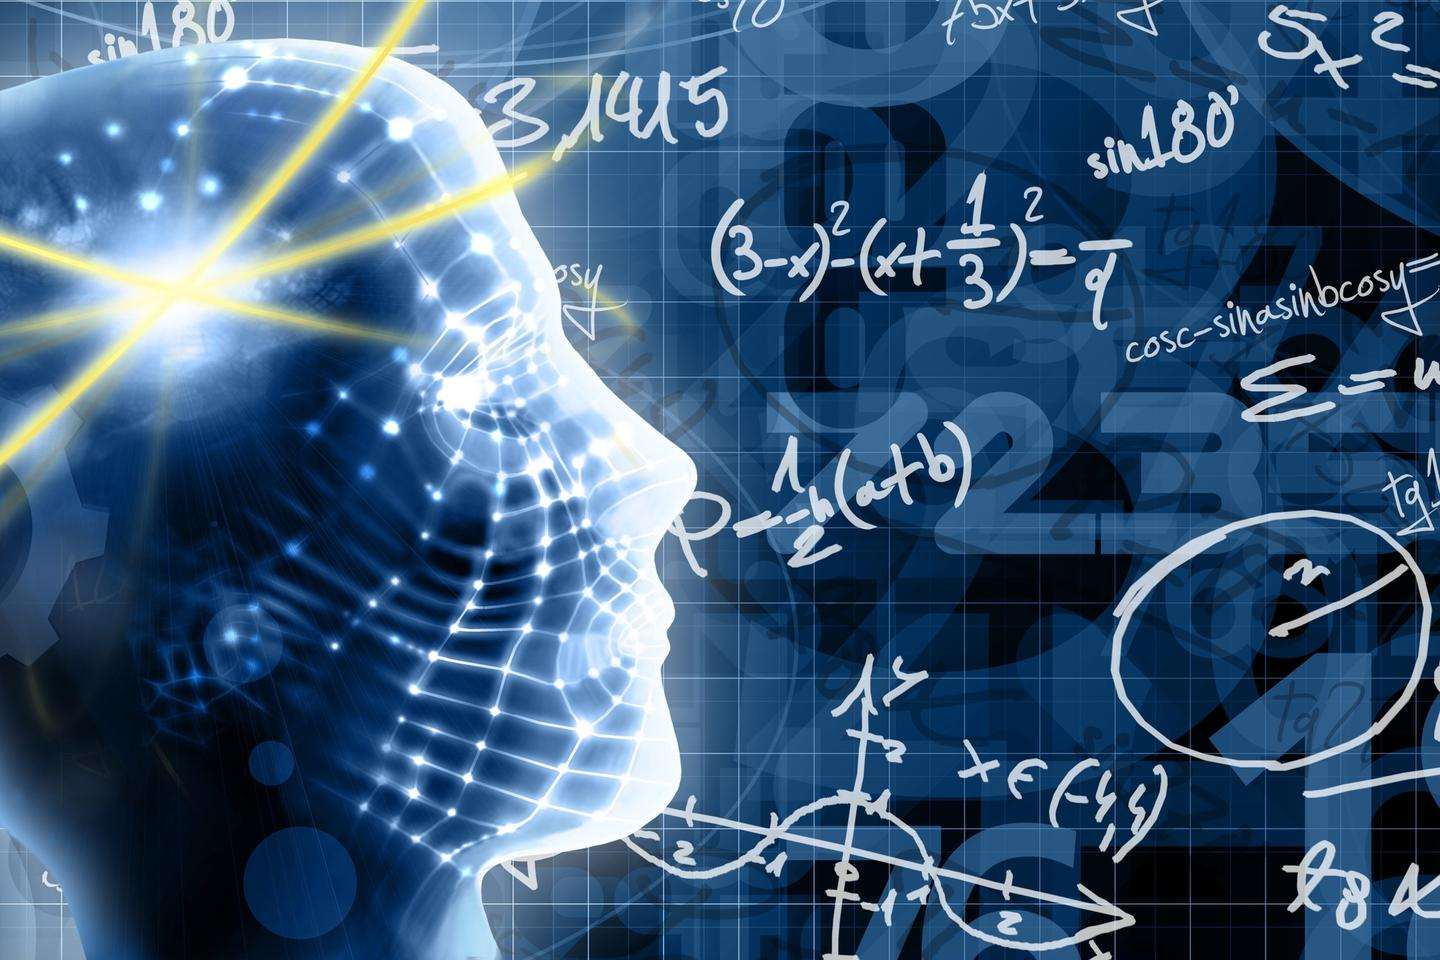 Neurotransmitter levels in a brain region called the intraparietal sulcus could predict how skilled a child is at math